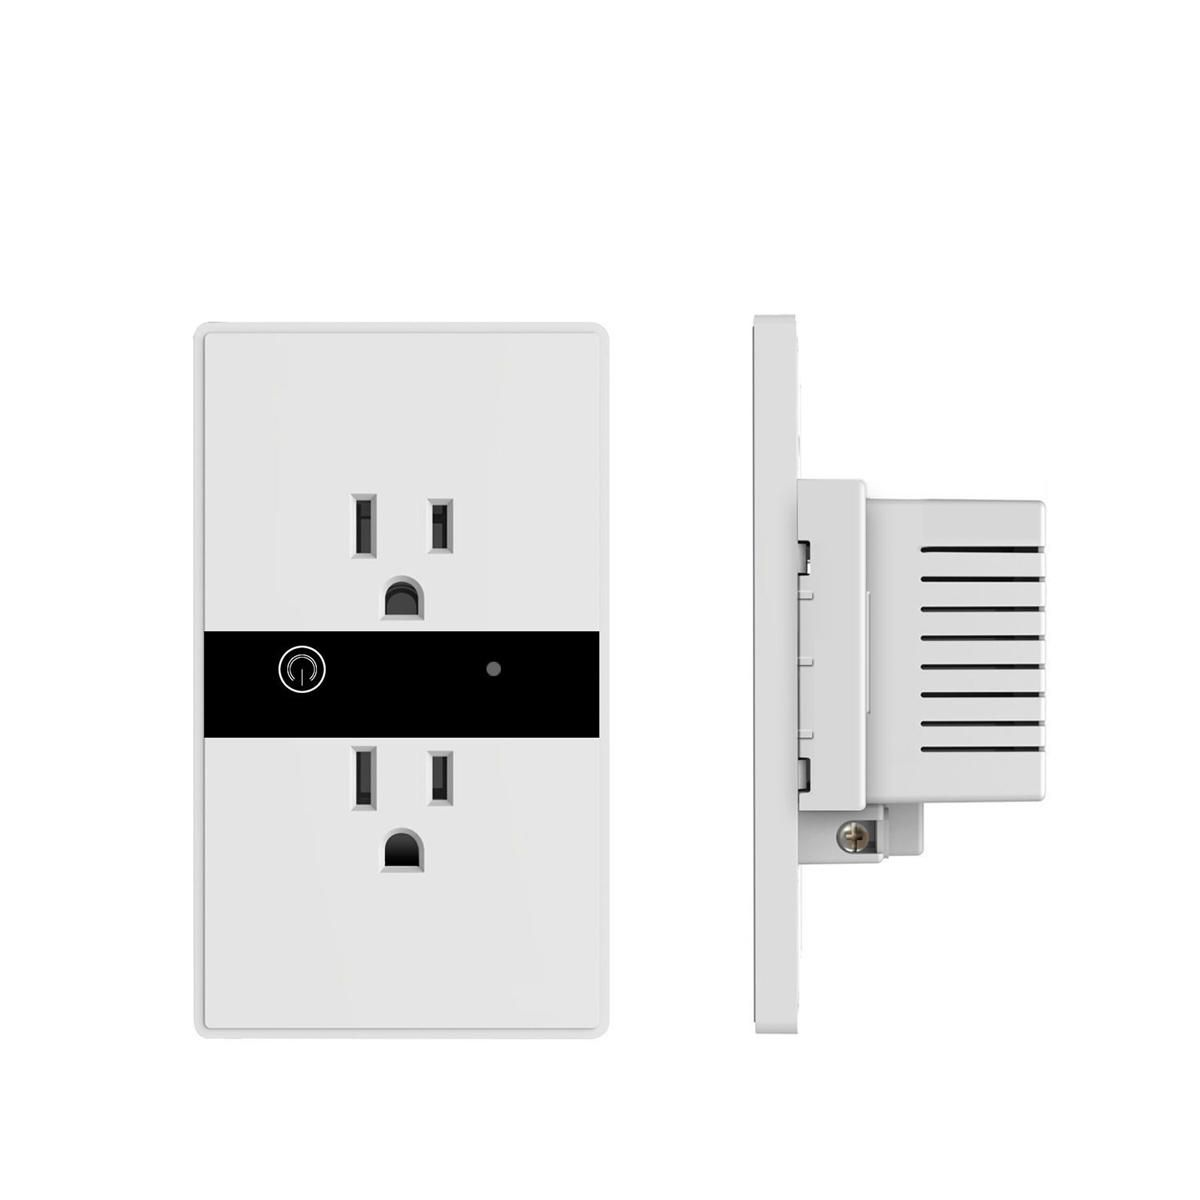 US$17.50] Smart WIFI Wall Outlet Plug Duplex Receptacle Switch ...